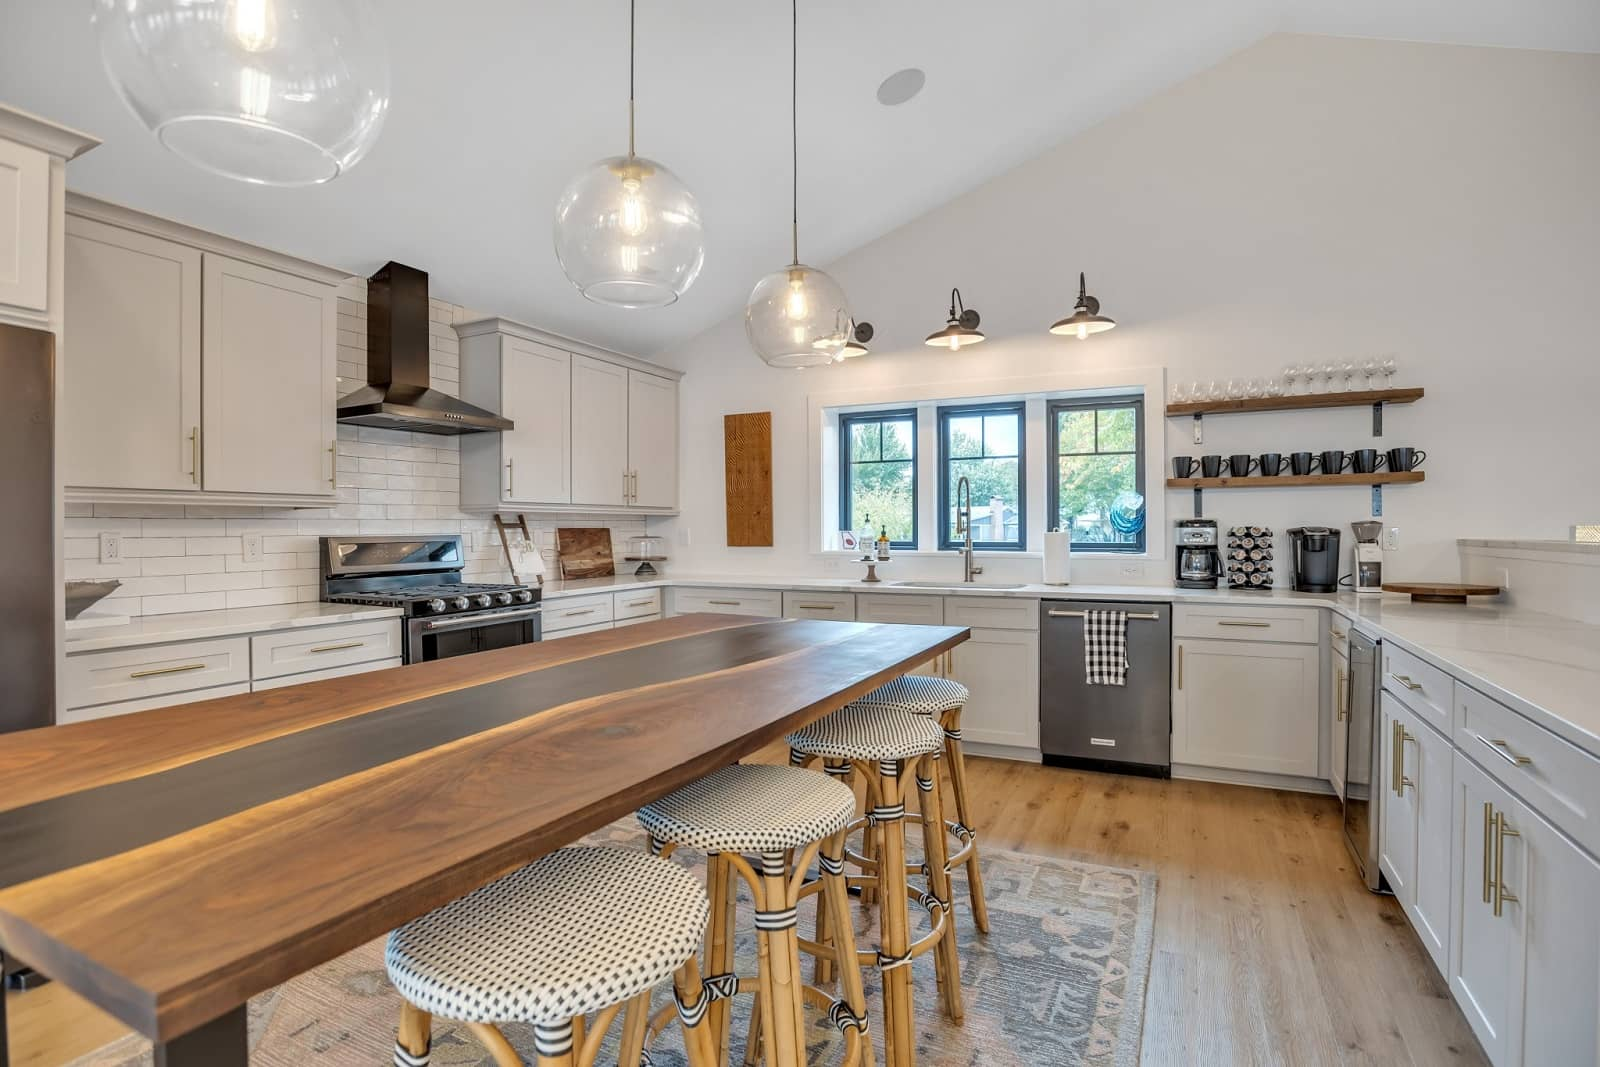 Real Estate Photography in Mooresville - NC - USA - Kitchen View